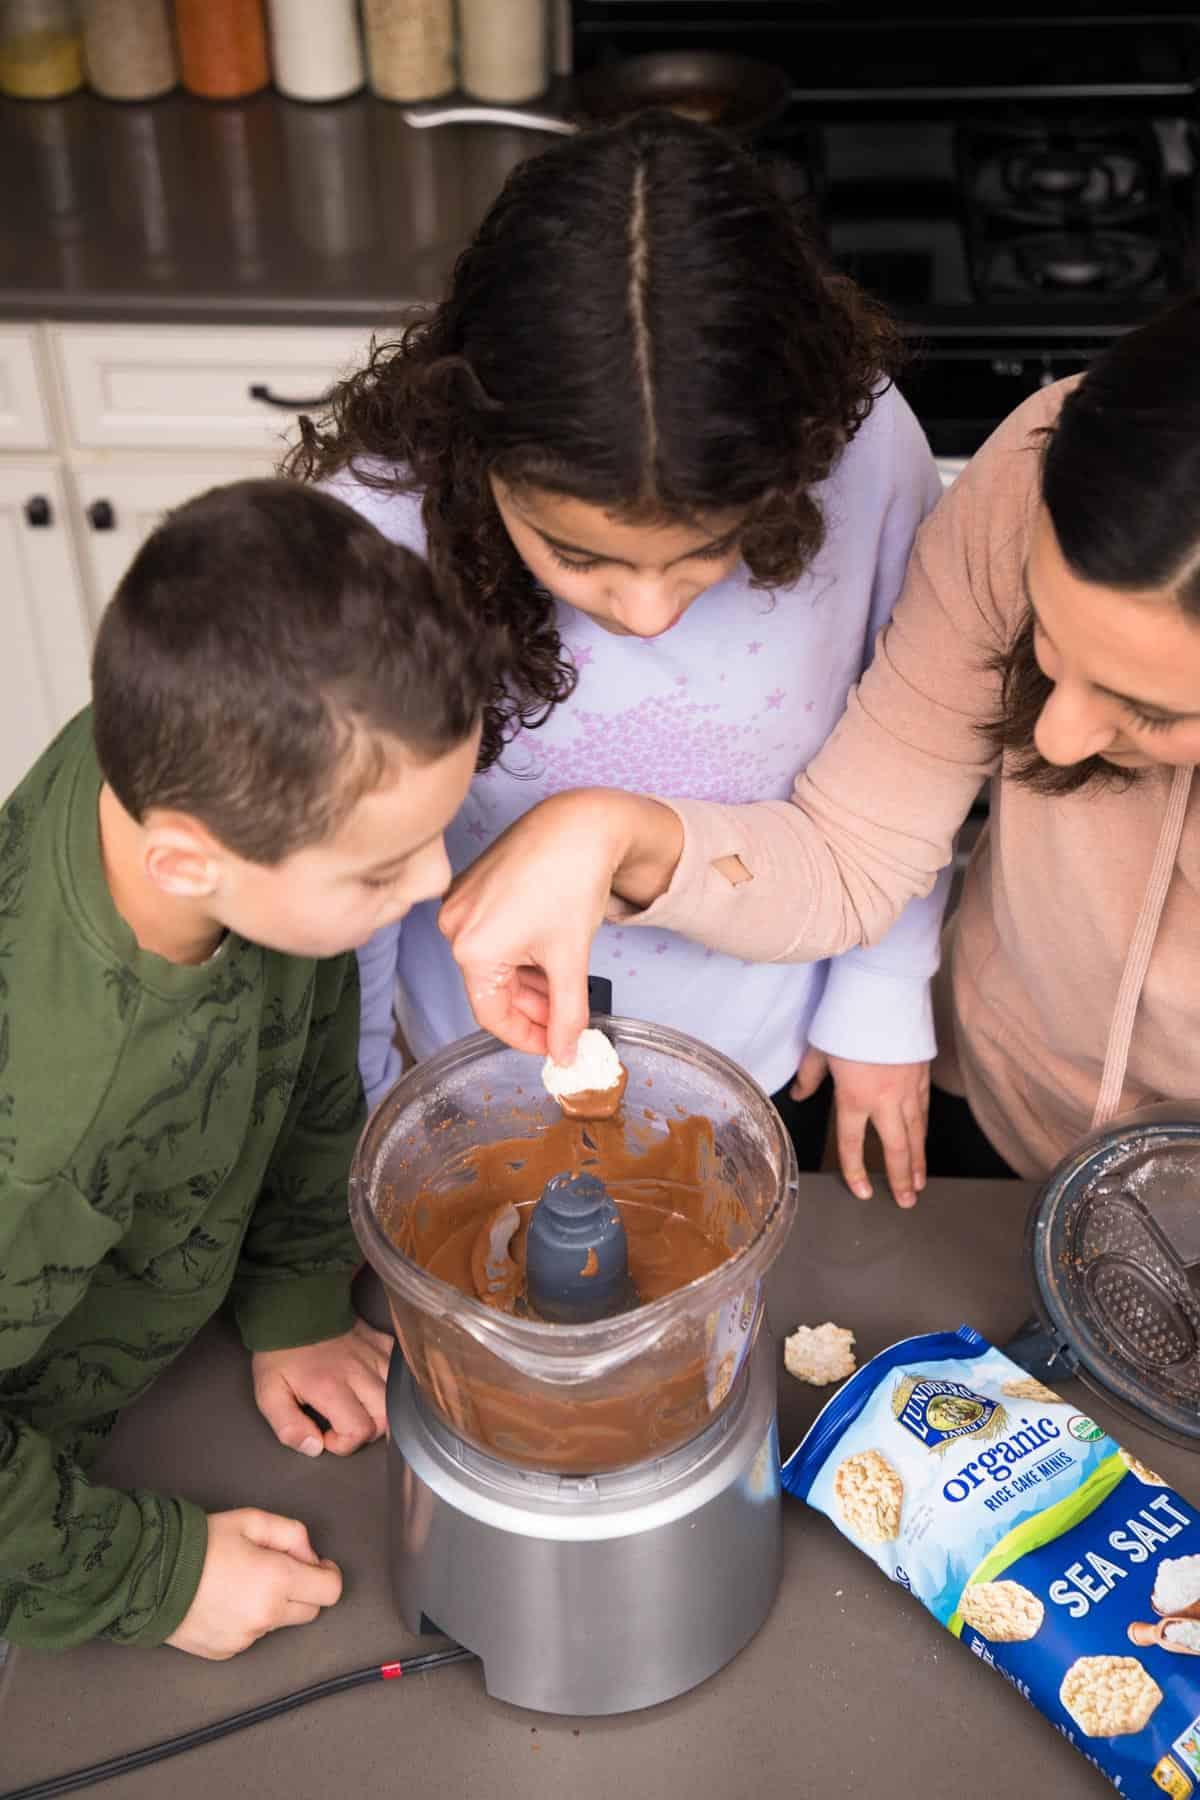 Yumna and kids dipping rice cake in nutella in food processor